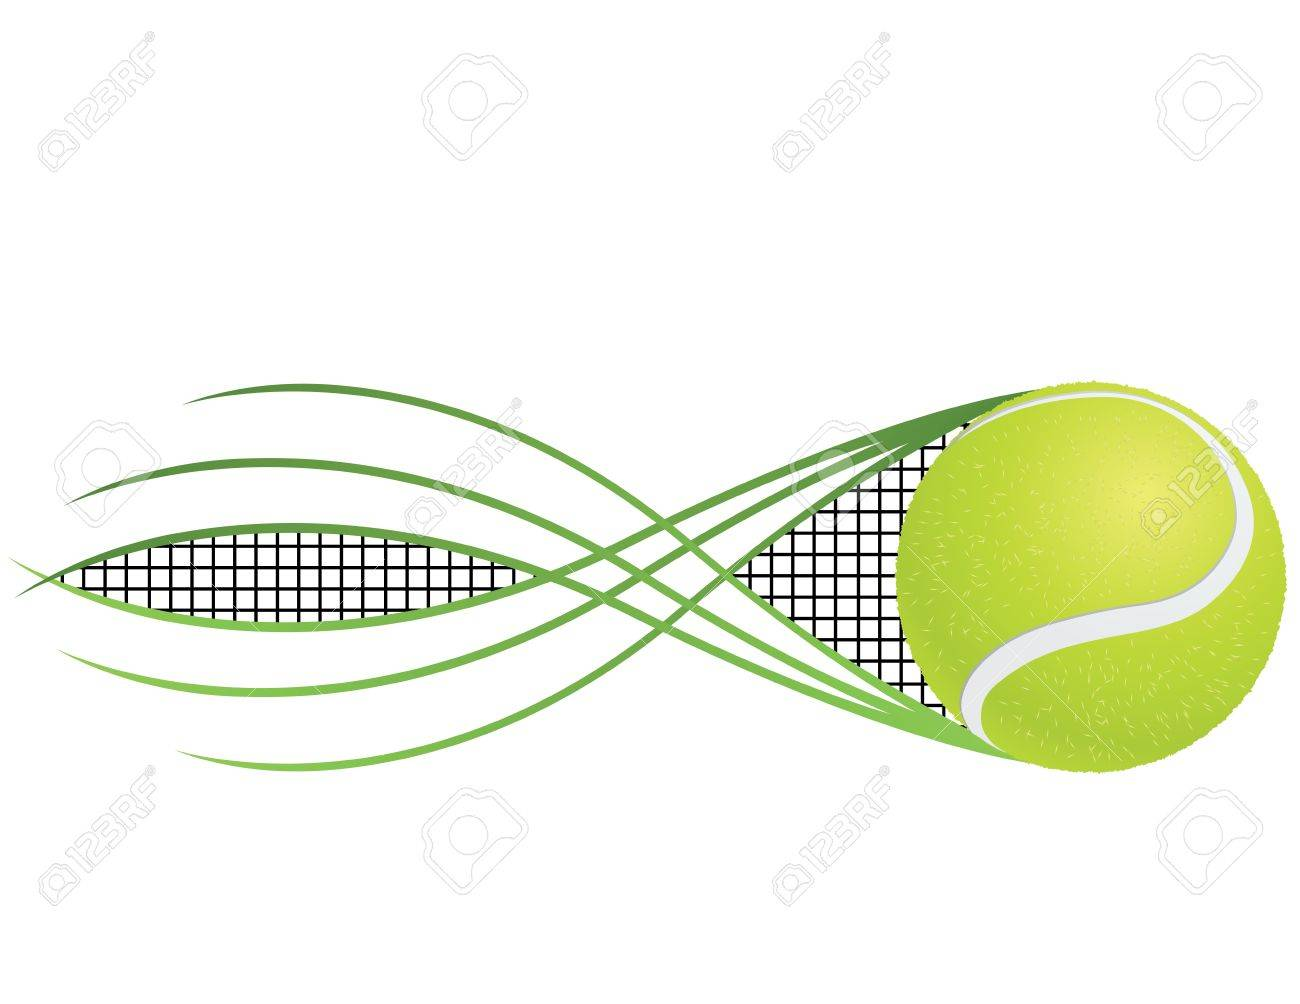 Tennis emblem and symbols isolated on white background. Stock Vector - 14471117